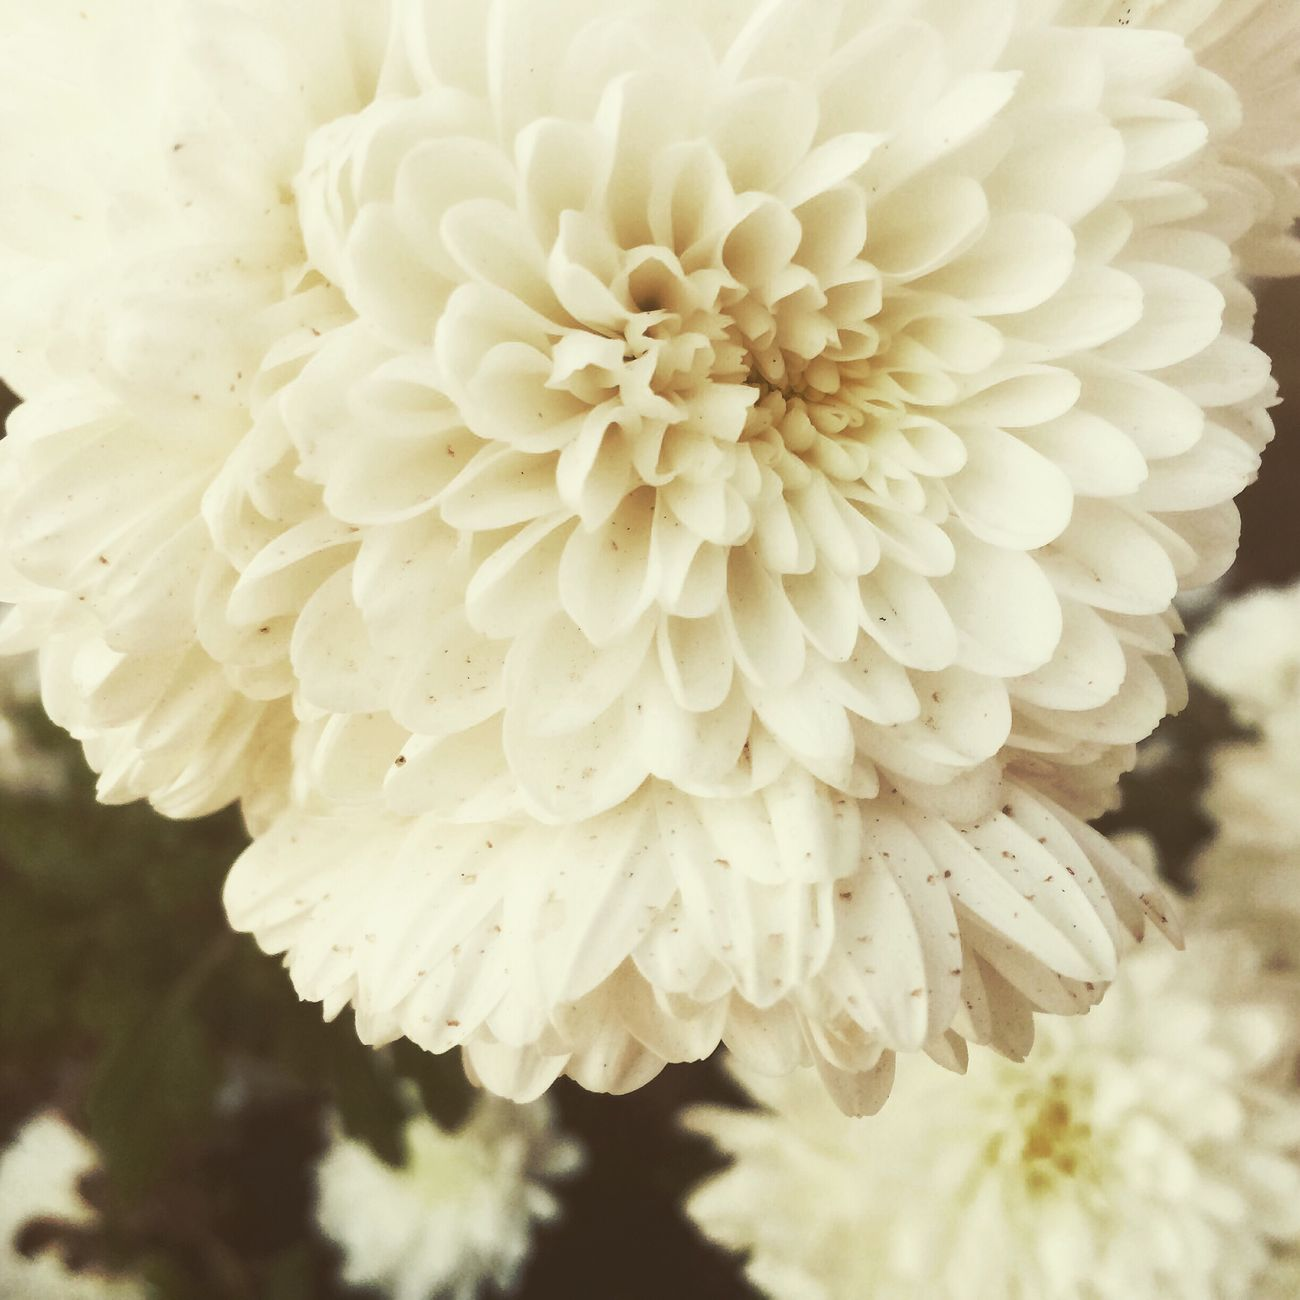 Mesmerizing White Beauty ! Flower Plants And Flowers